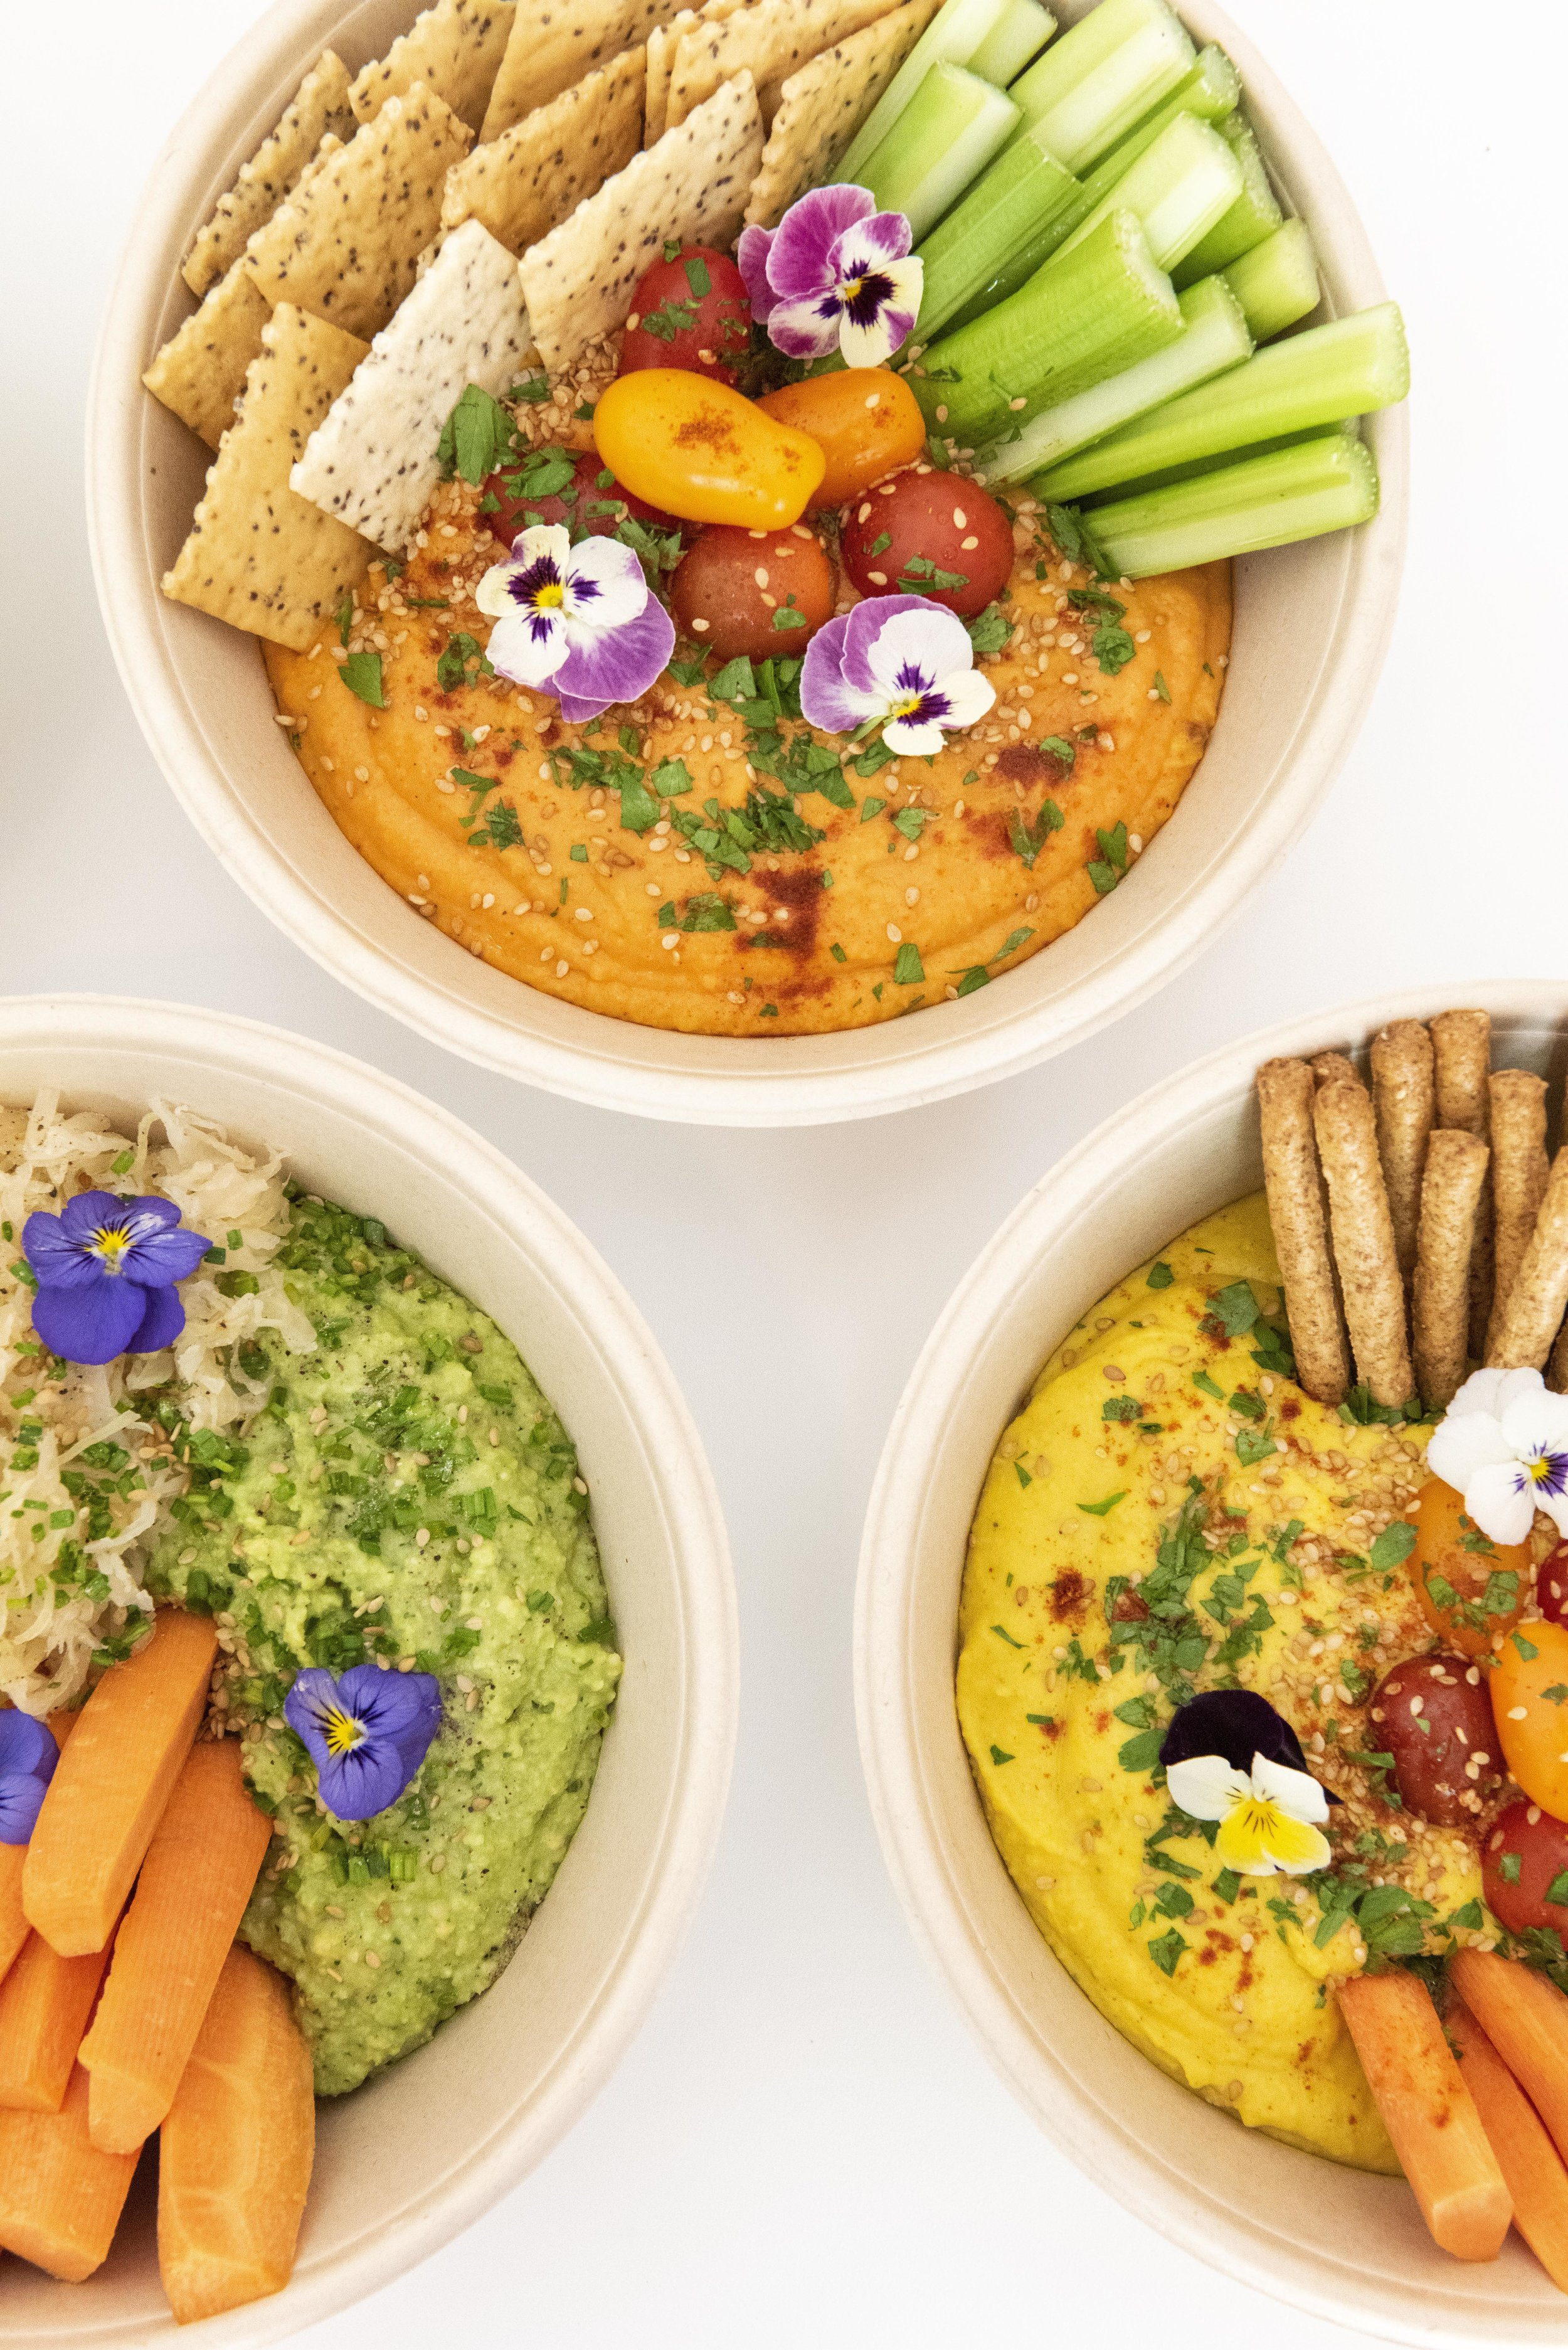 Hummus for catering by Wild Lulita, Barcelona. Photo © Barcelona Food Experience.